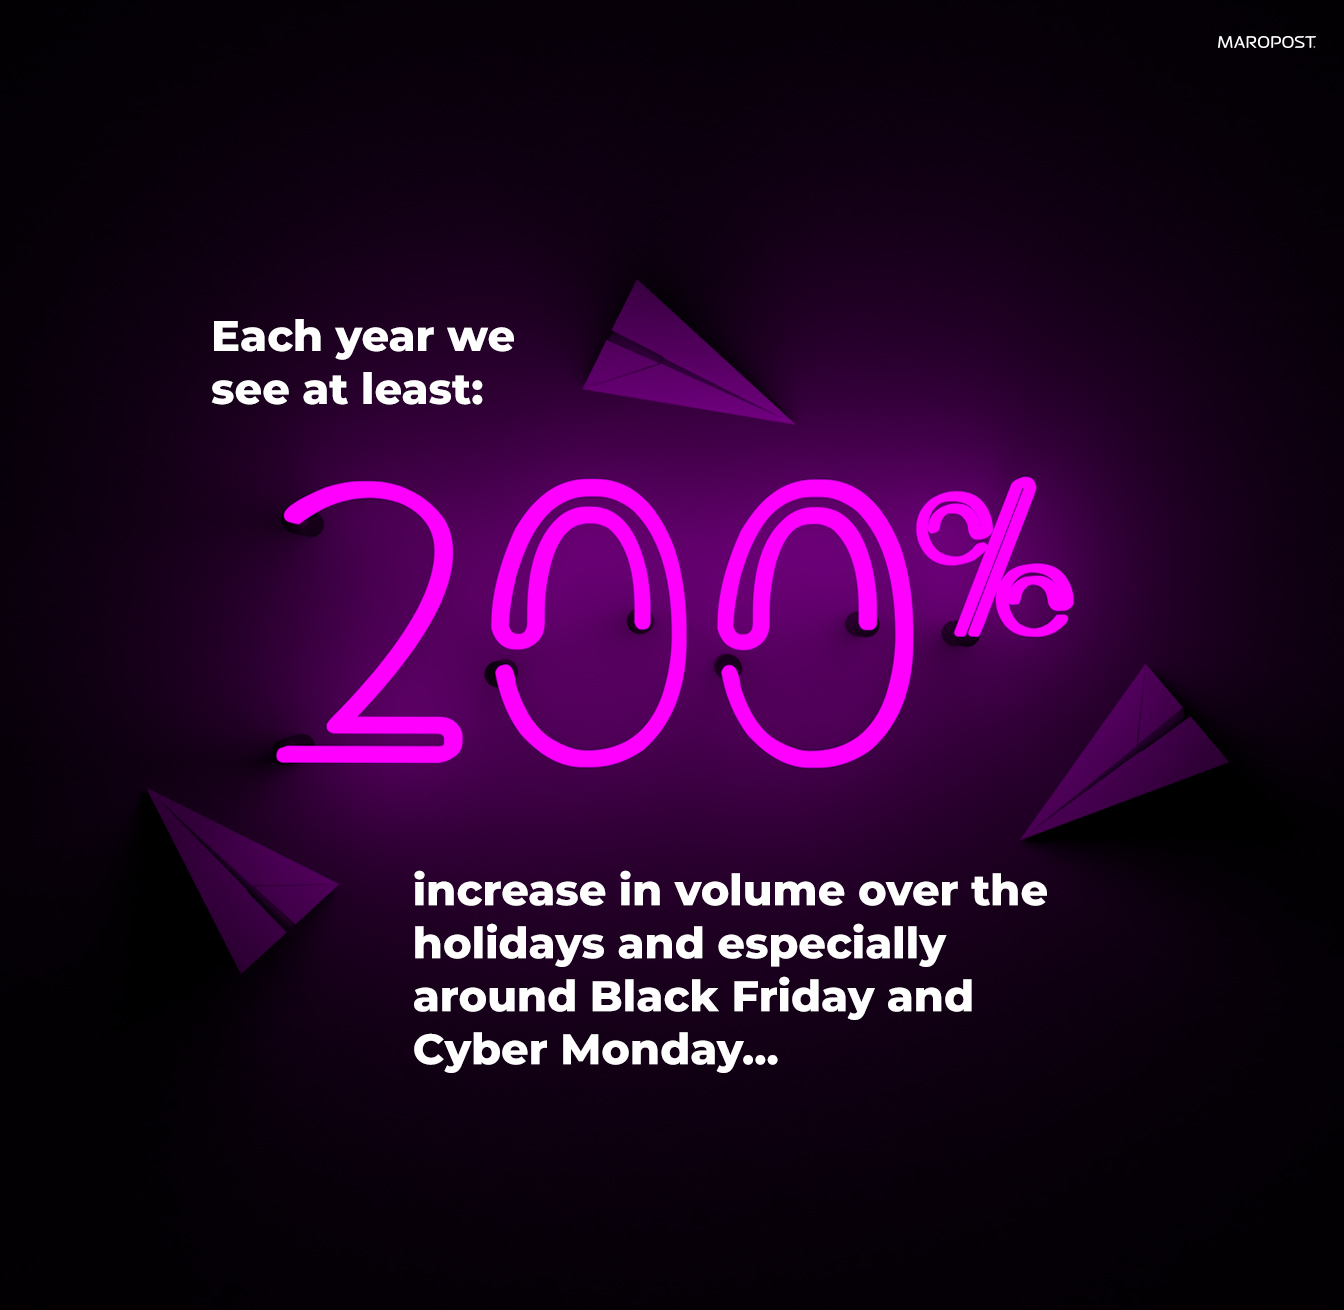 black friday & cyber monday email marketing stats